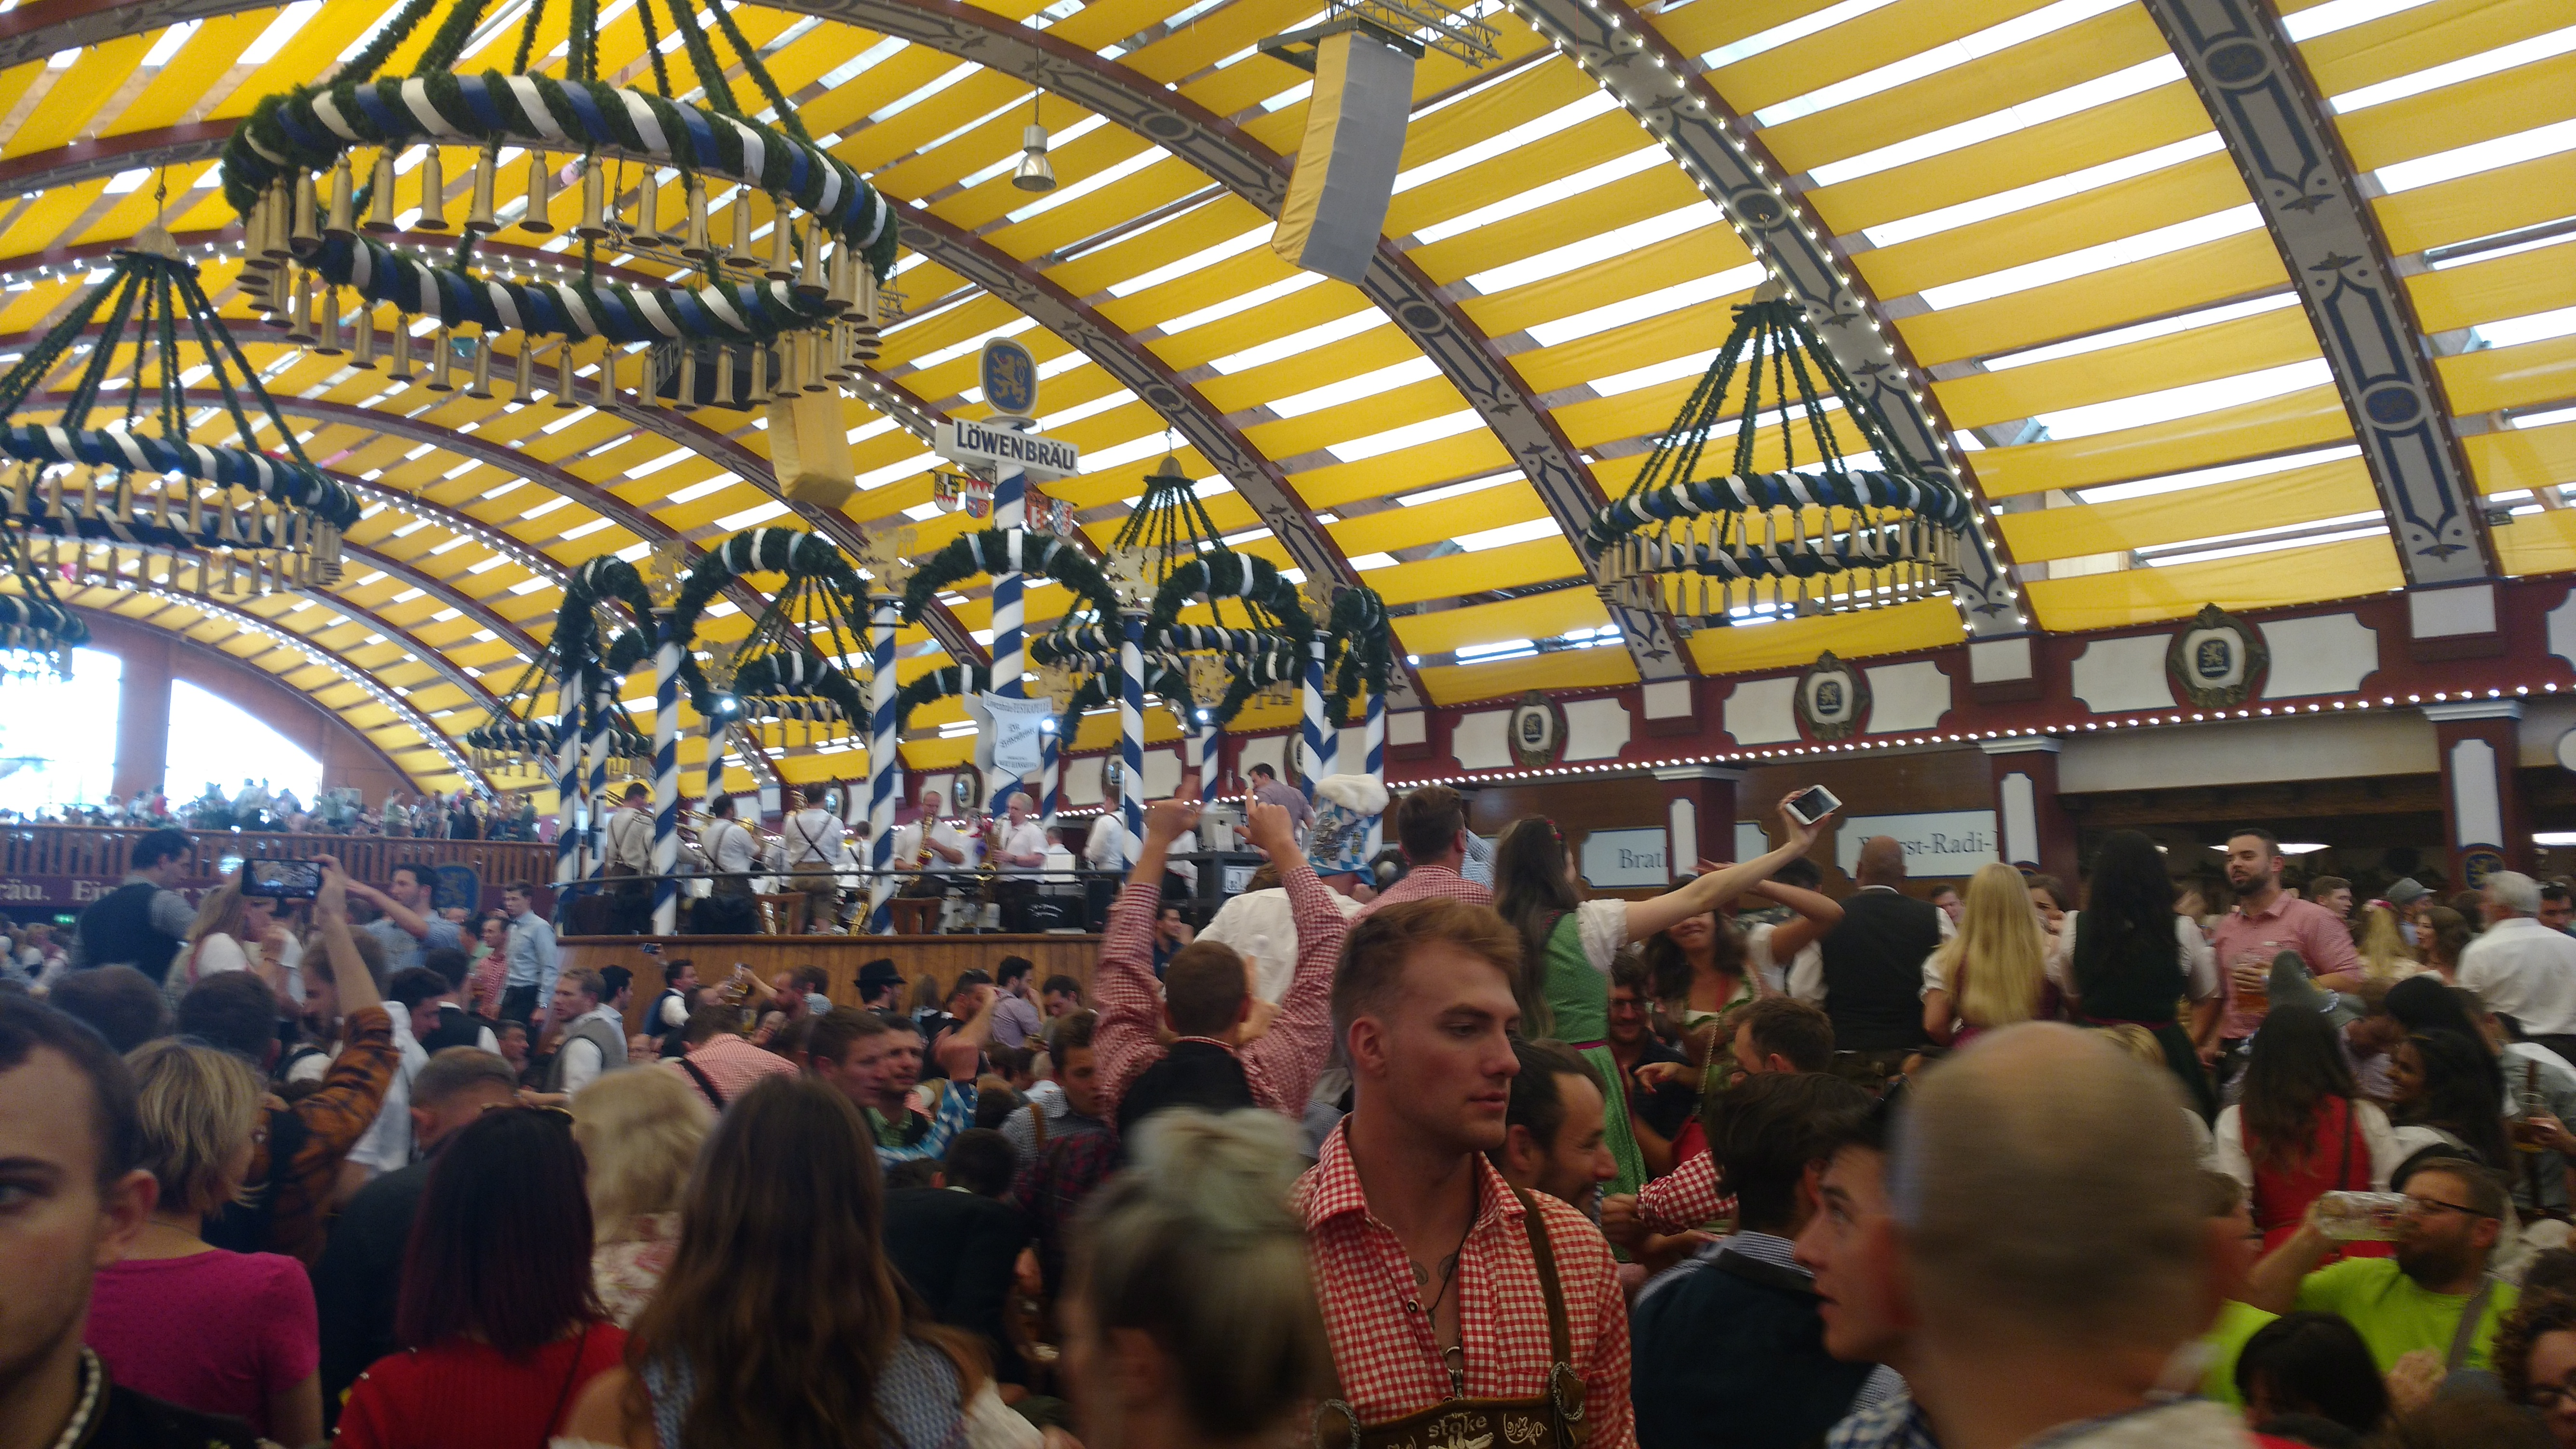 Visiting Oktoberfest with a baby